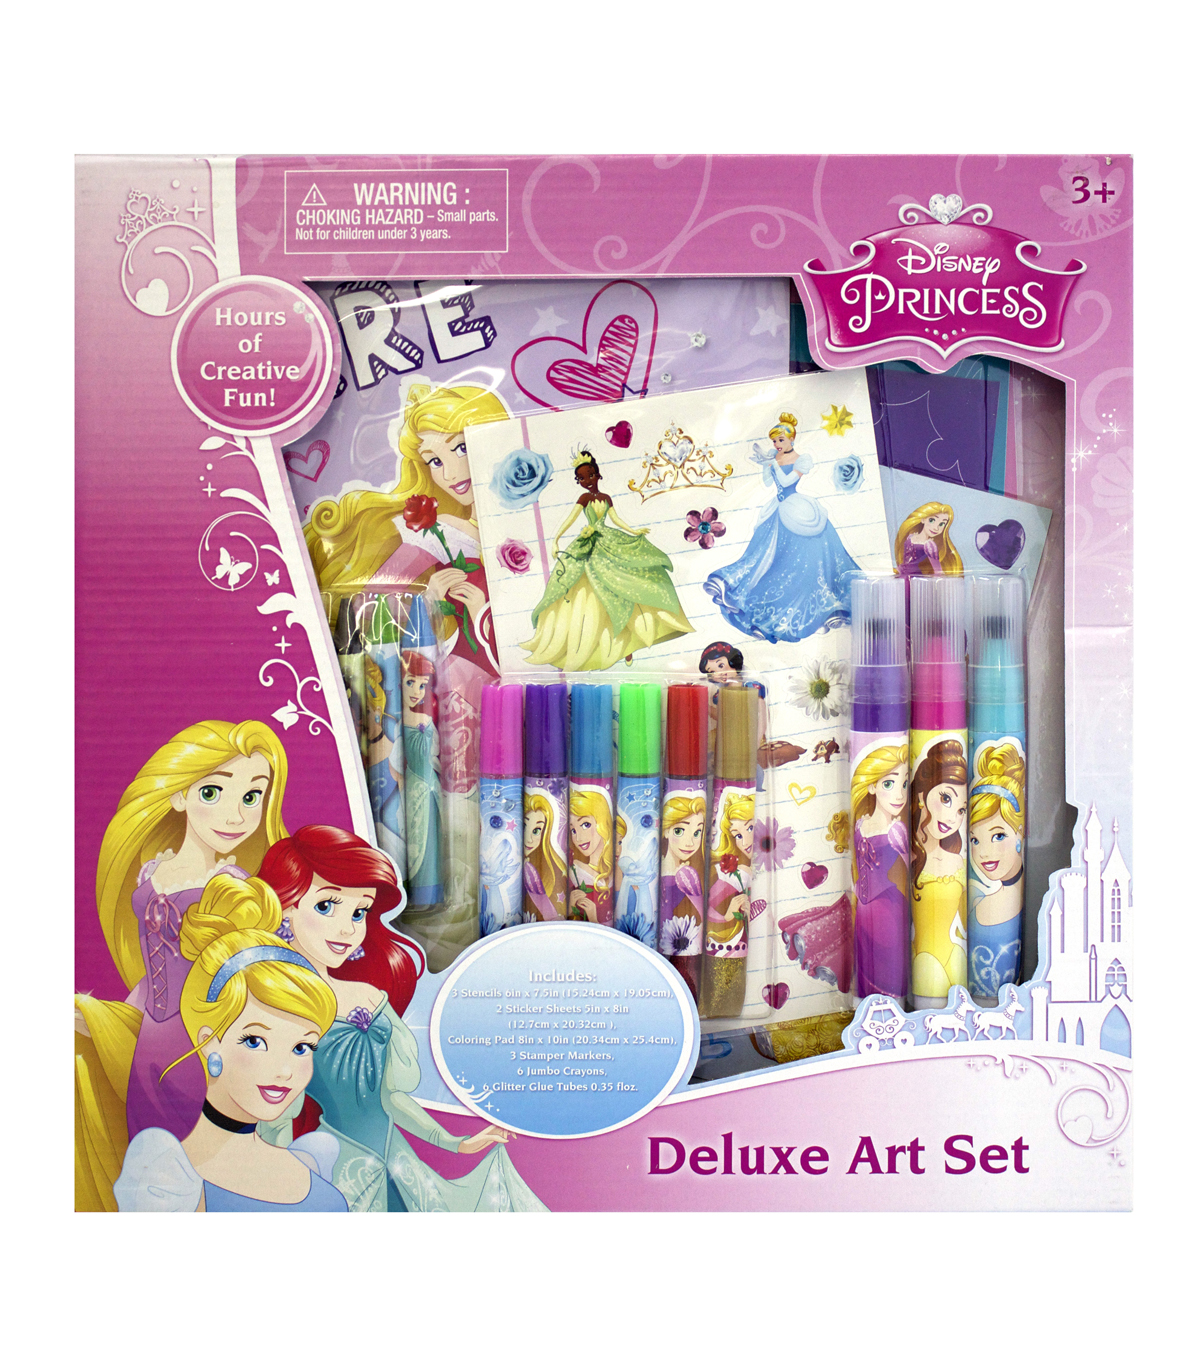 Princess Deluxe Art Set